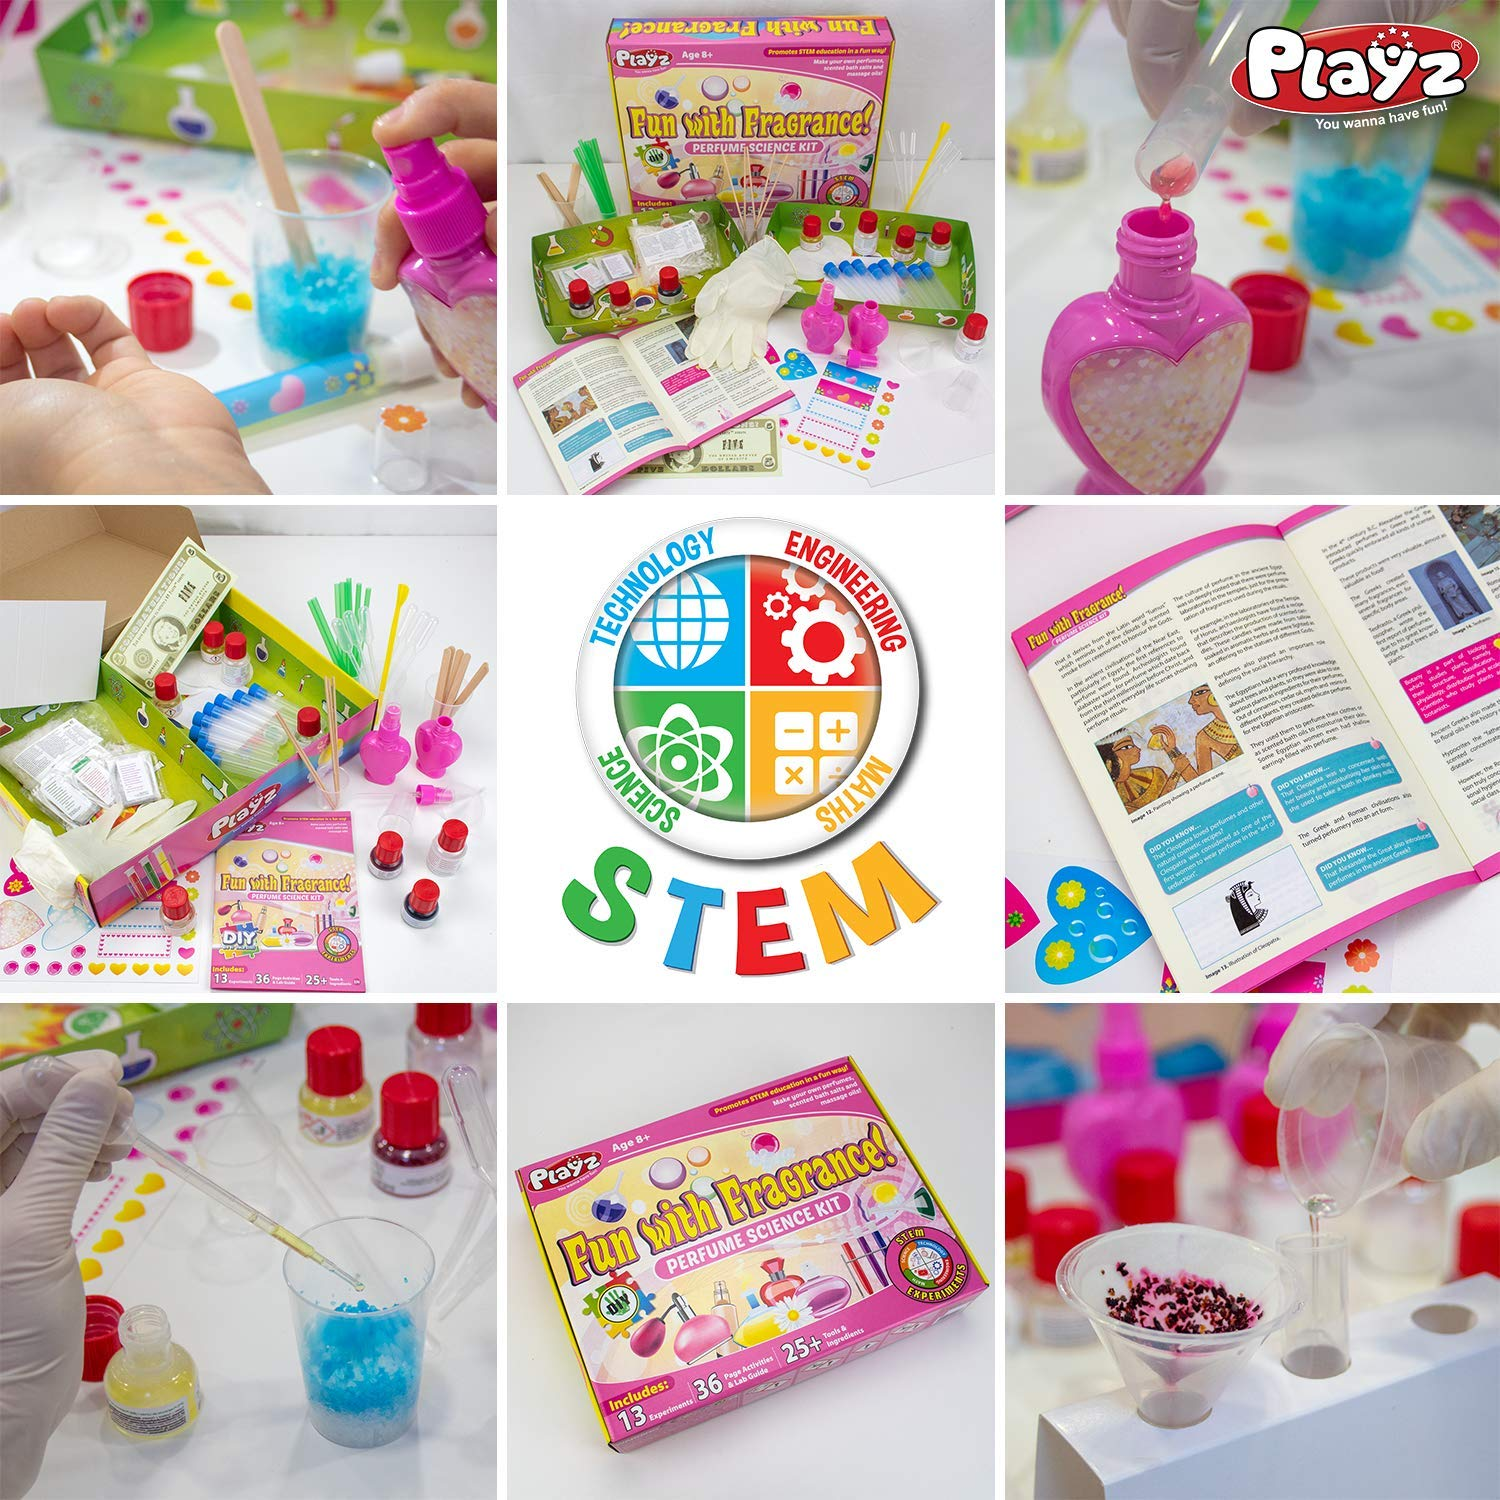 Playz Fun with Fragrance Perfume Making Science Kit for Kids - 13+ STEM Experiments & DIY Activities to Learn the Chemistry Behind Perfumes with 36 Page Lab Guide & 27+ Tools and Ingredients for Girls by Playz (Image #5)